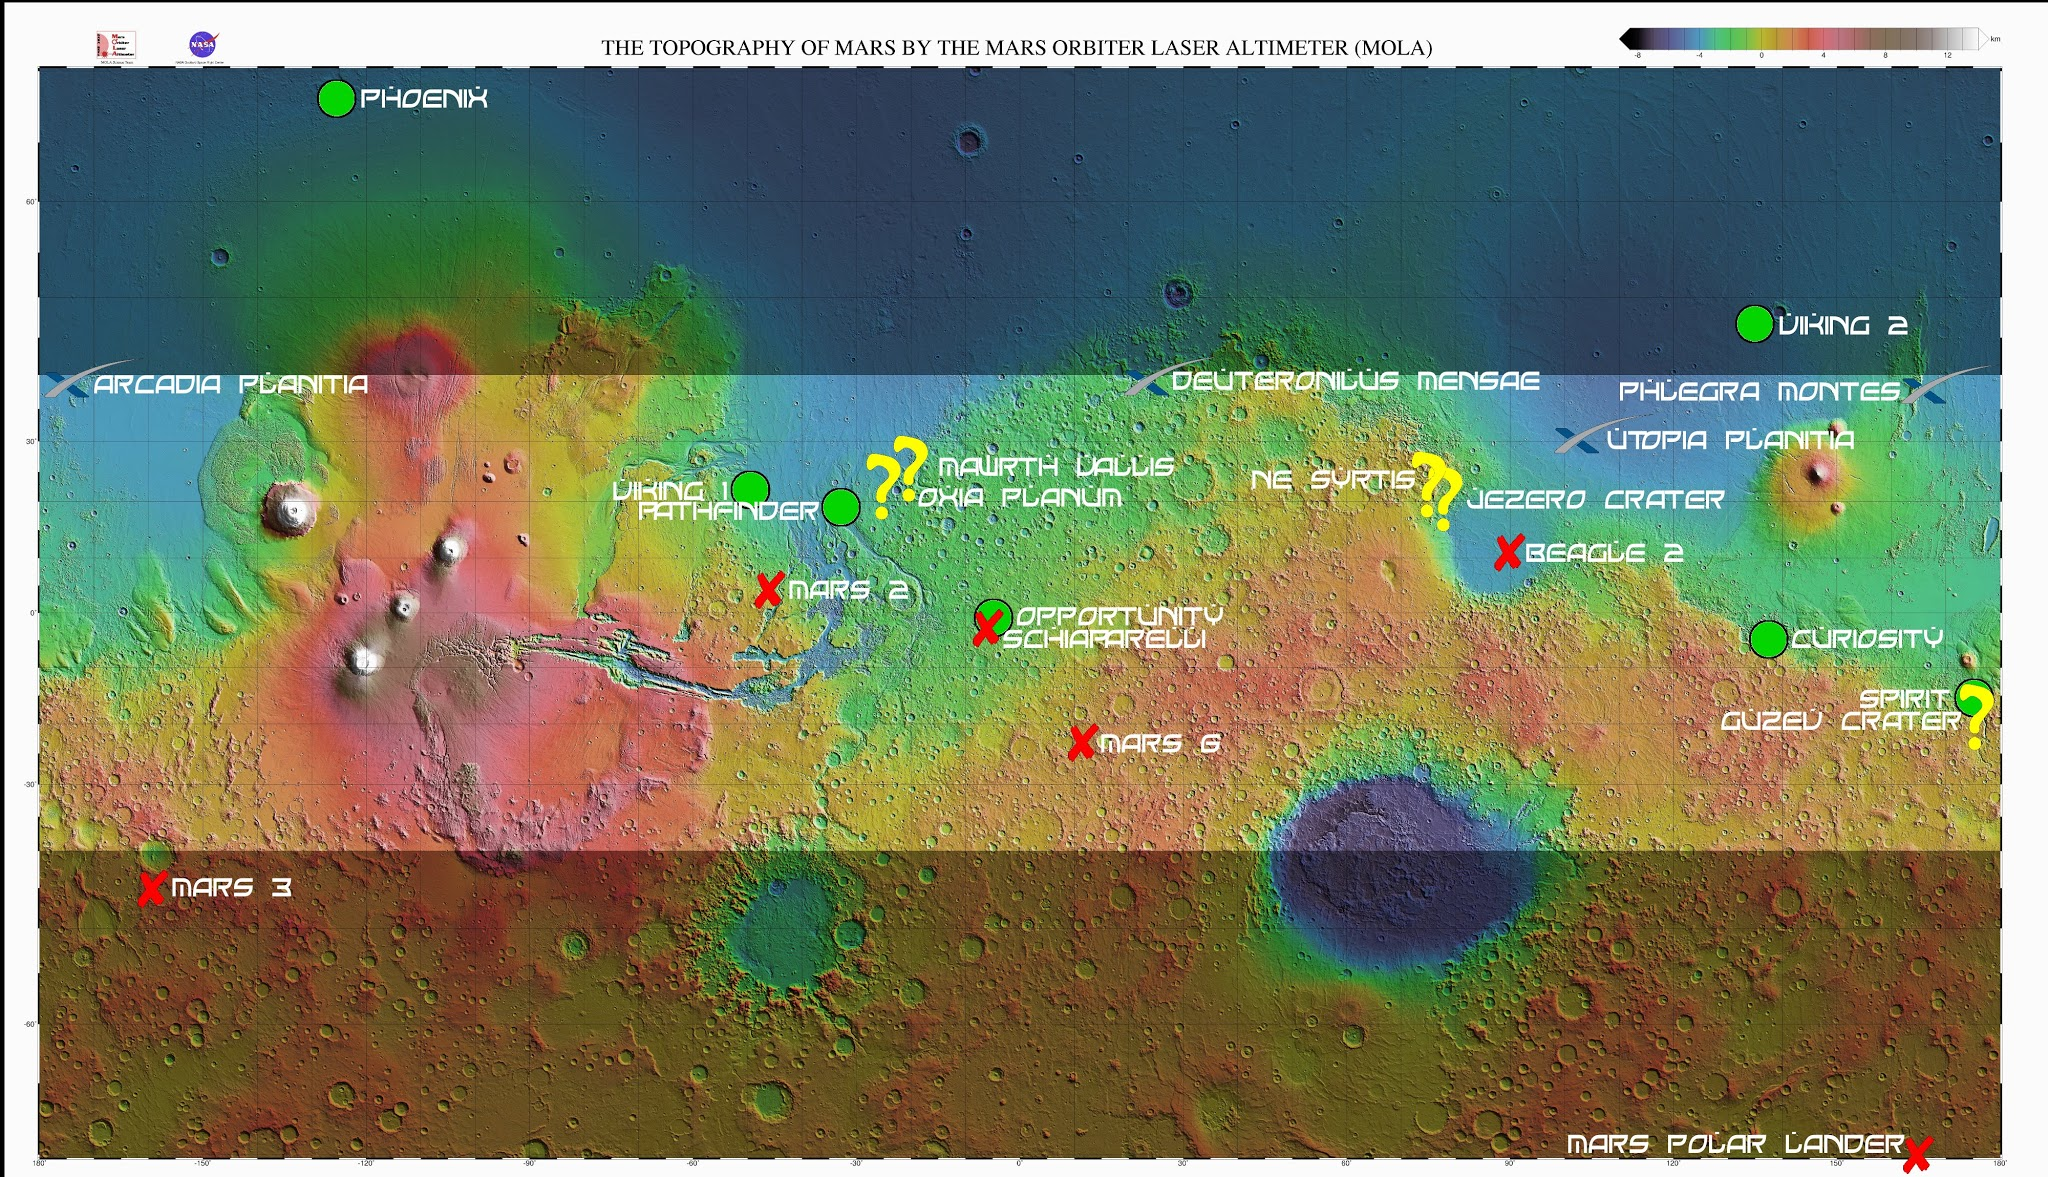 mars rover landing map - photo #8